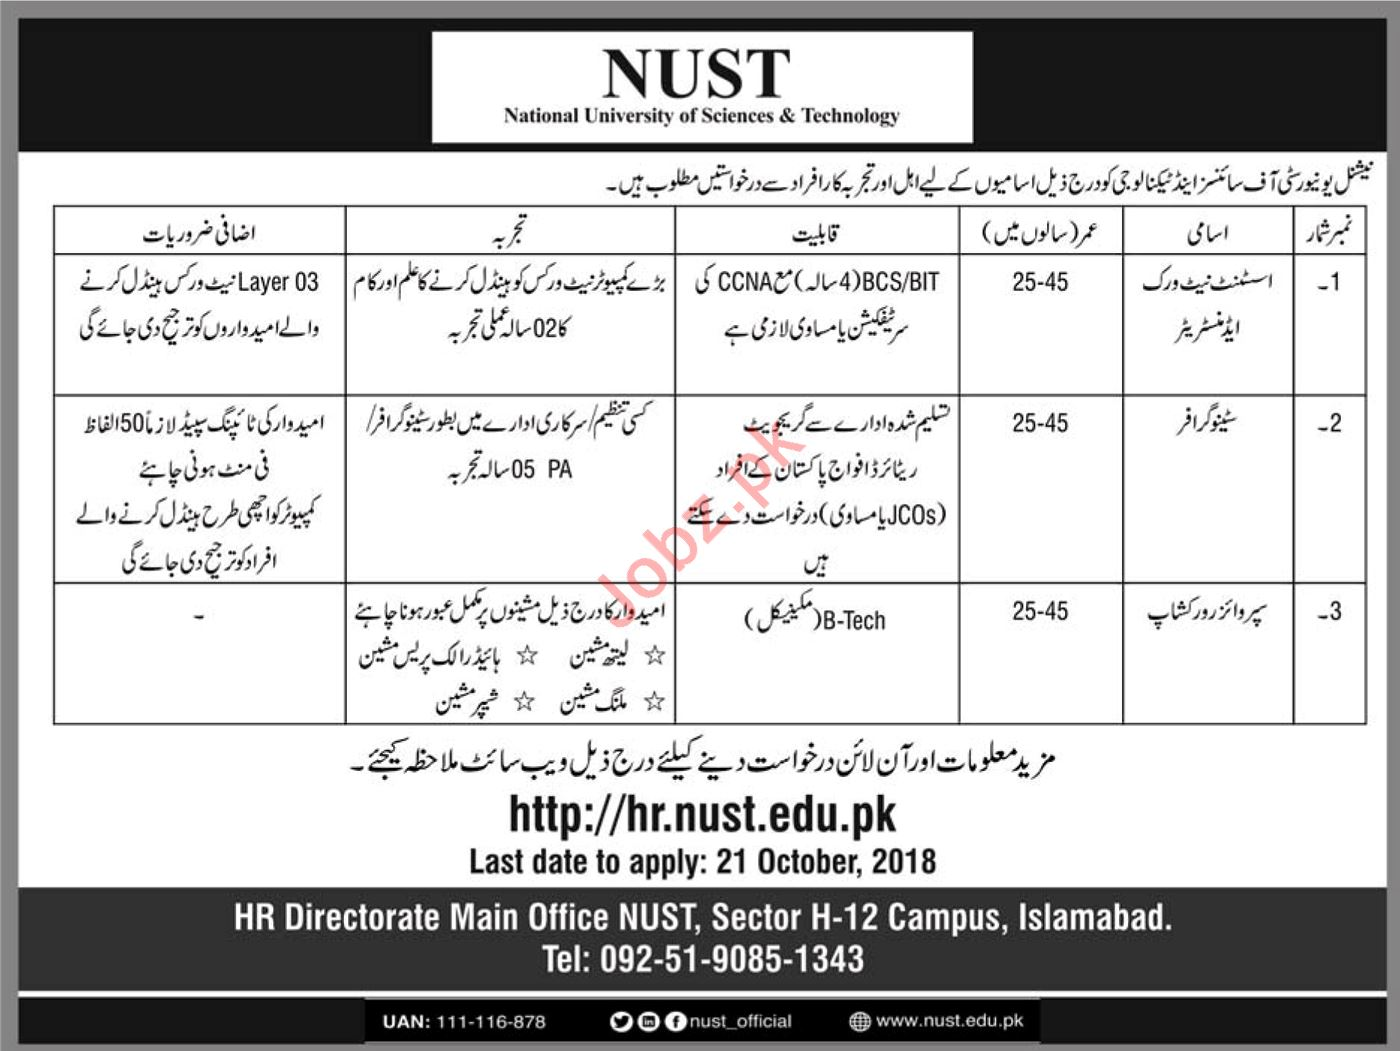 National University of Sciences & Technology NUST Jobs 2018